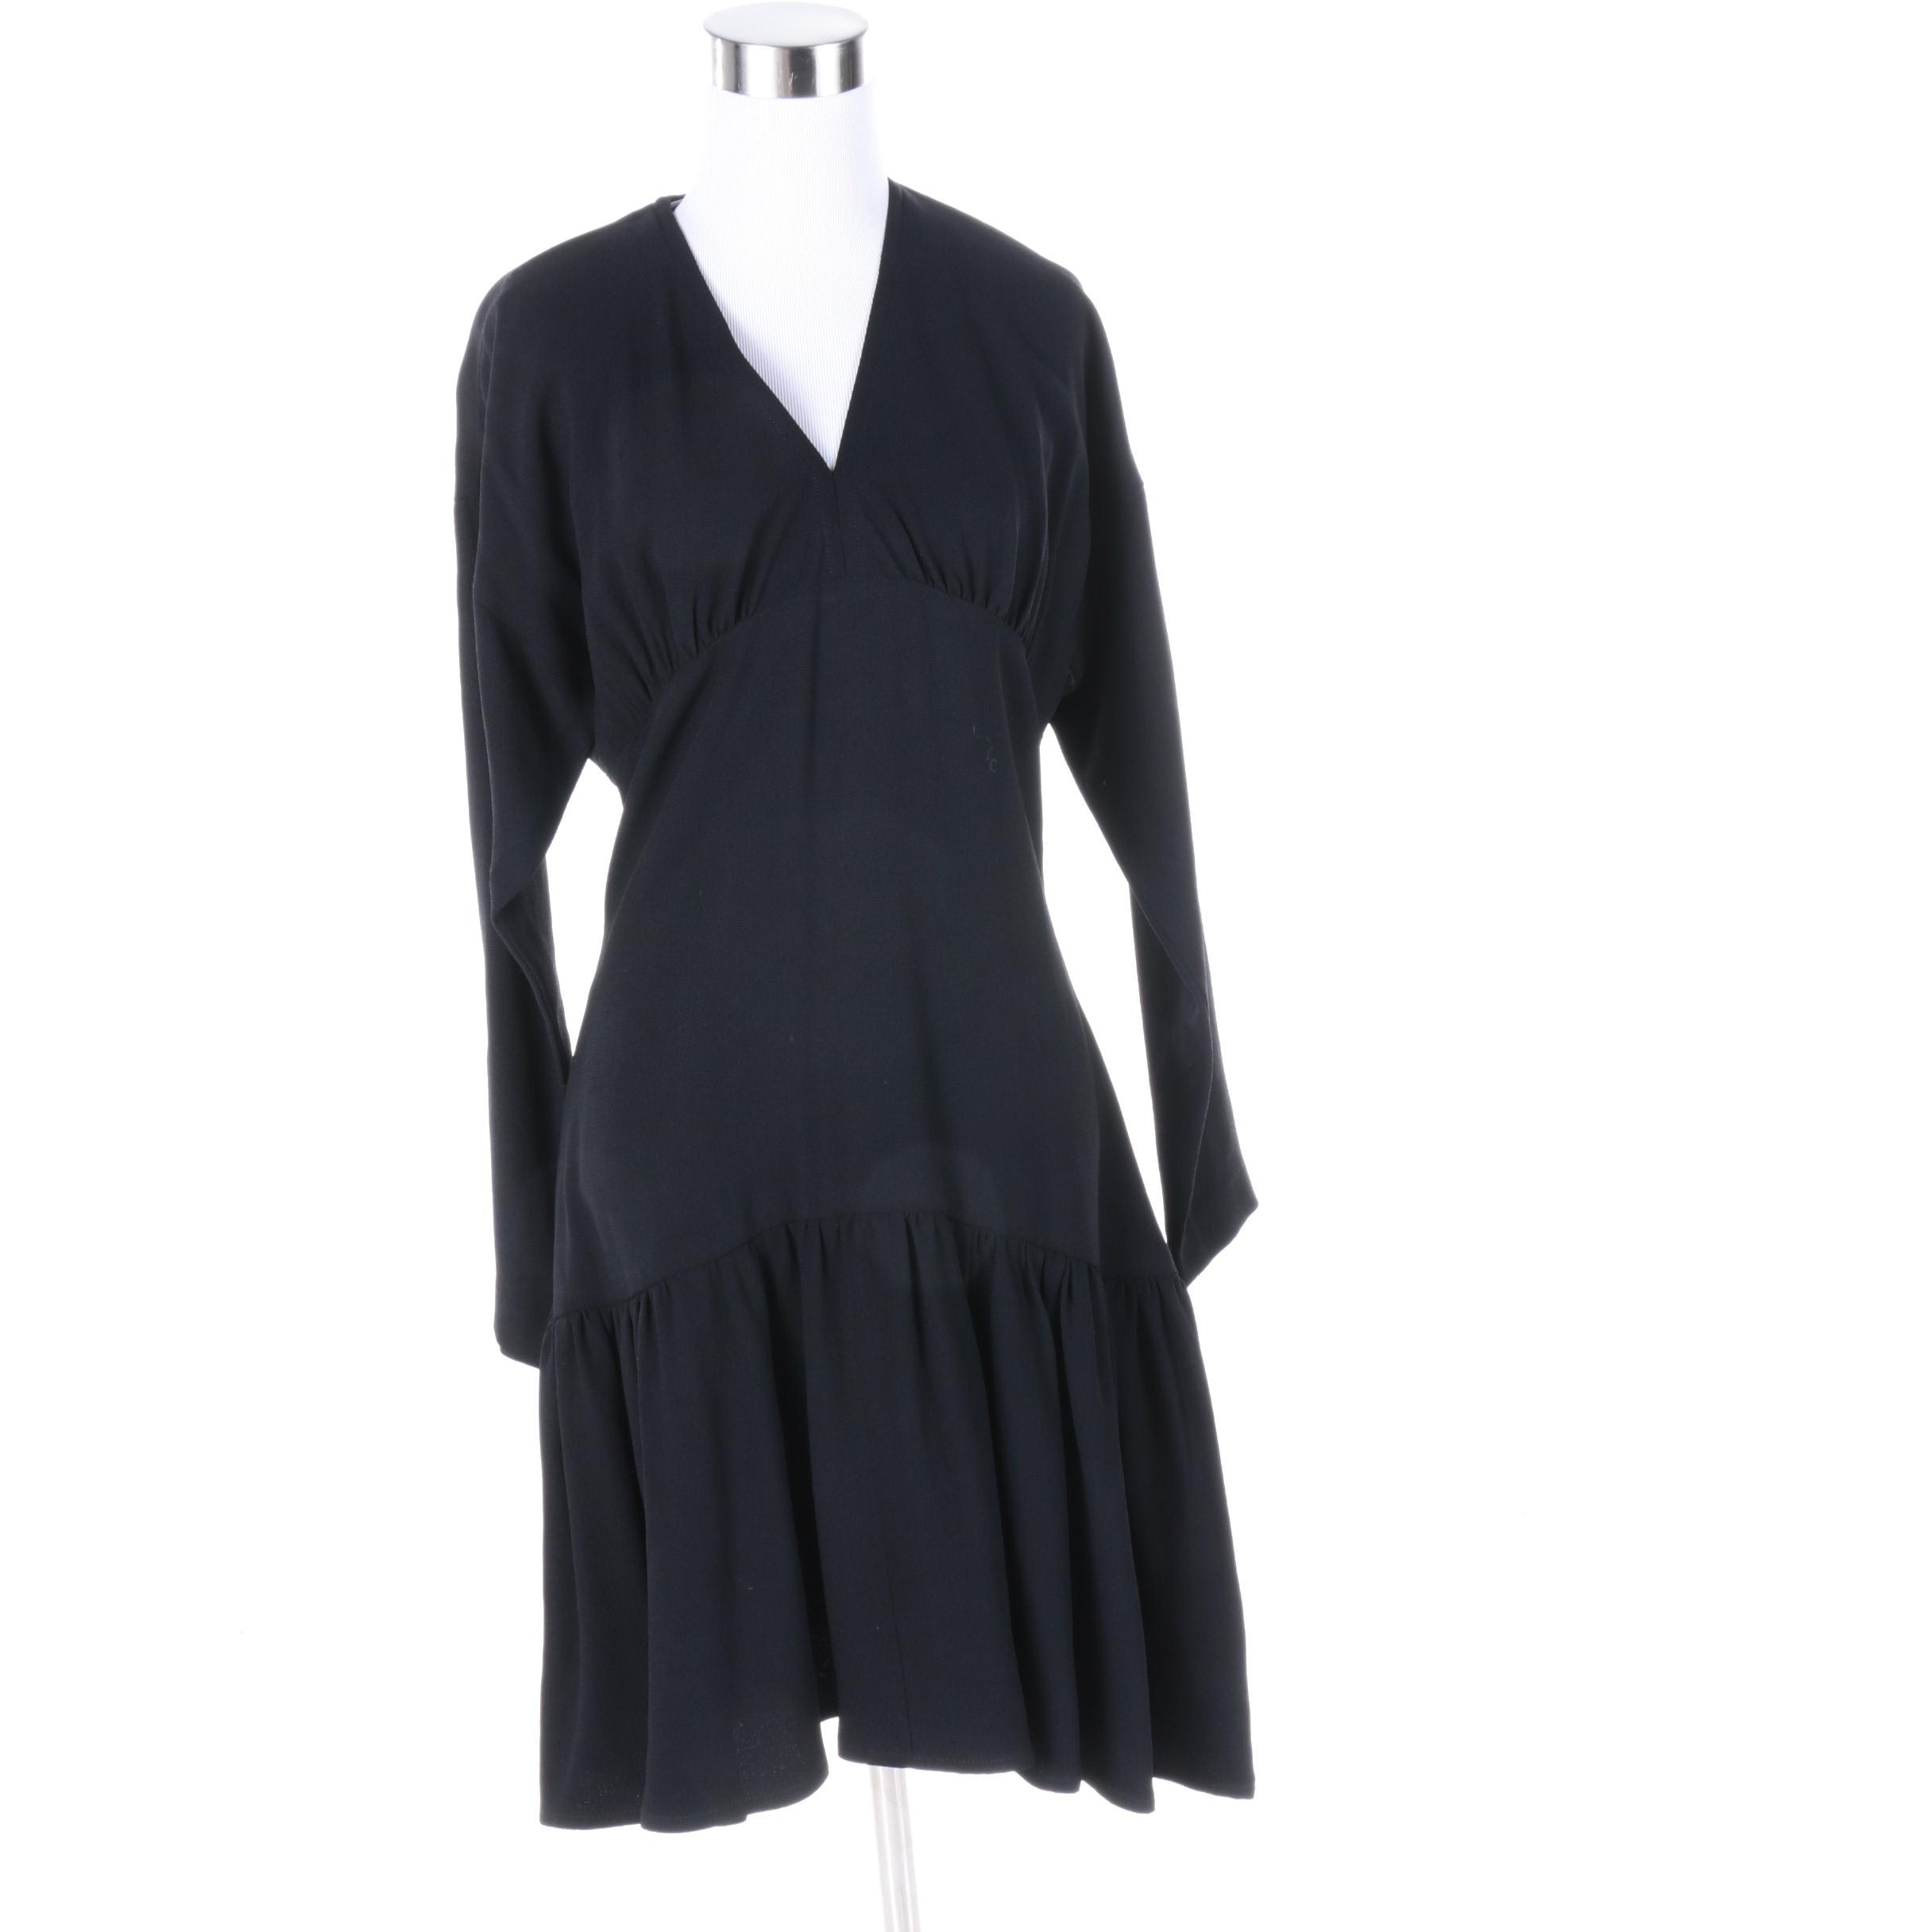 Women's 1980s Vintage Sonia Rykiel of Paris Hattie Black Dress